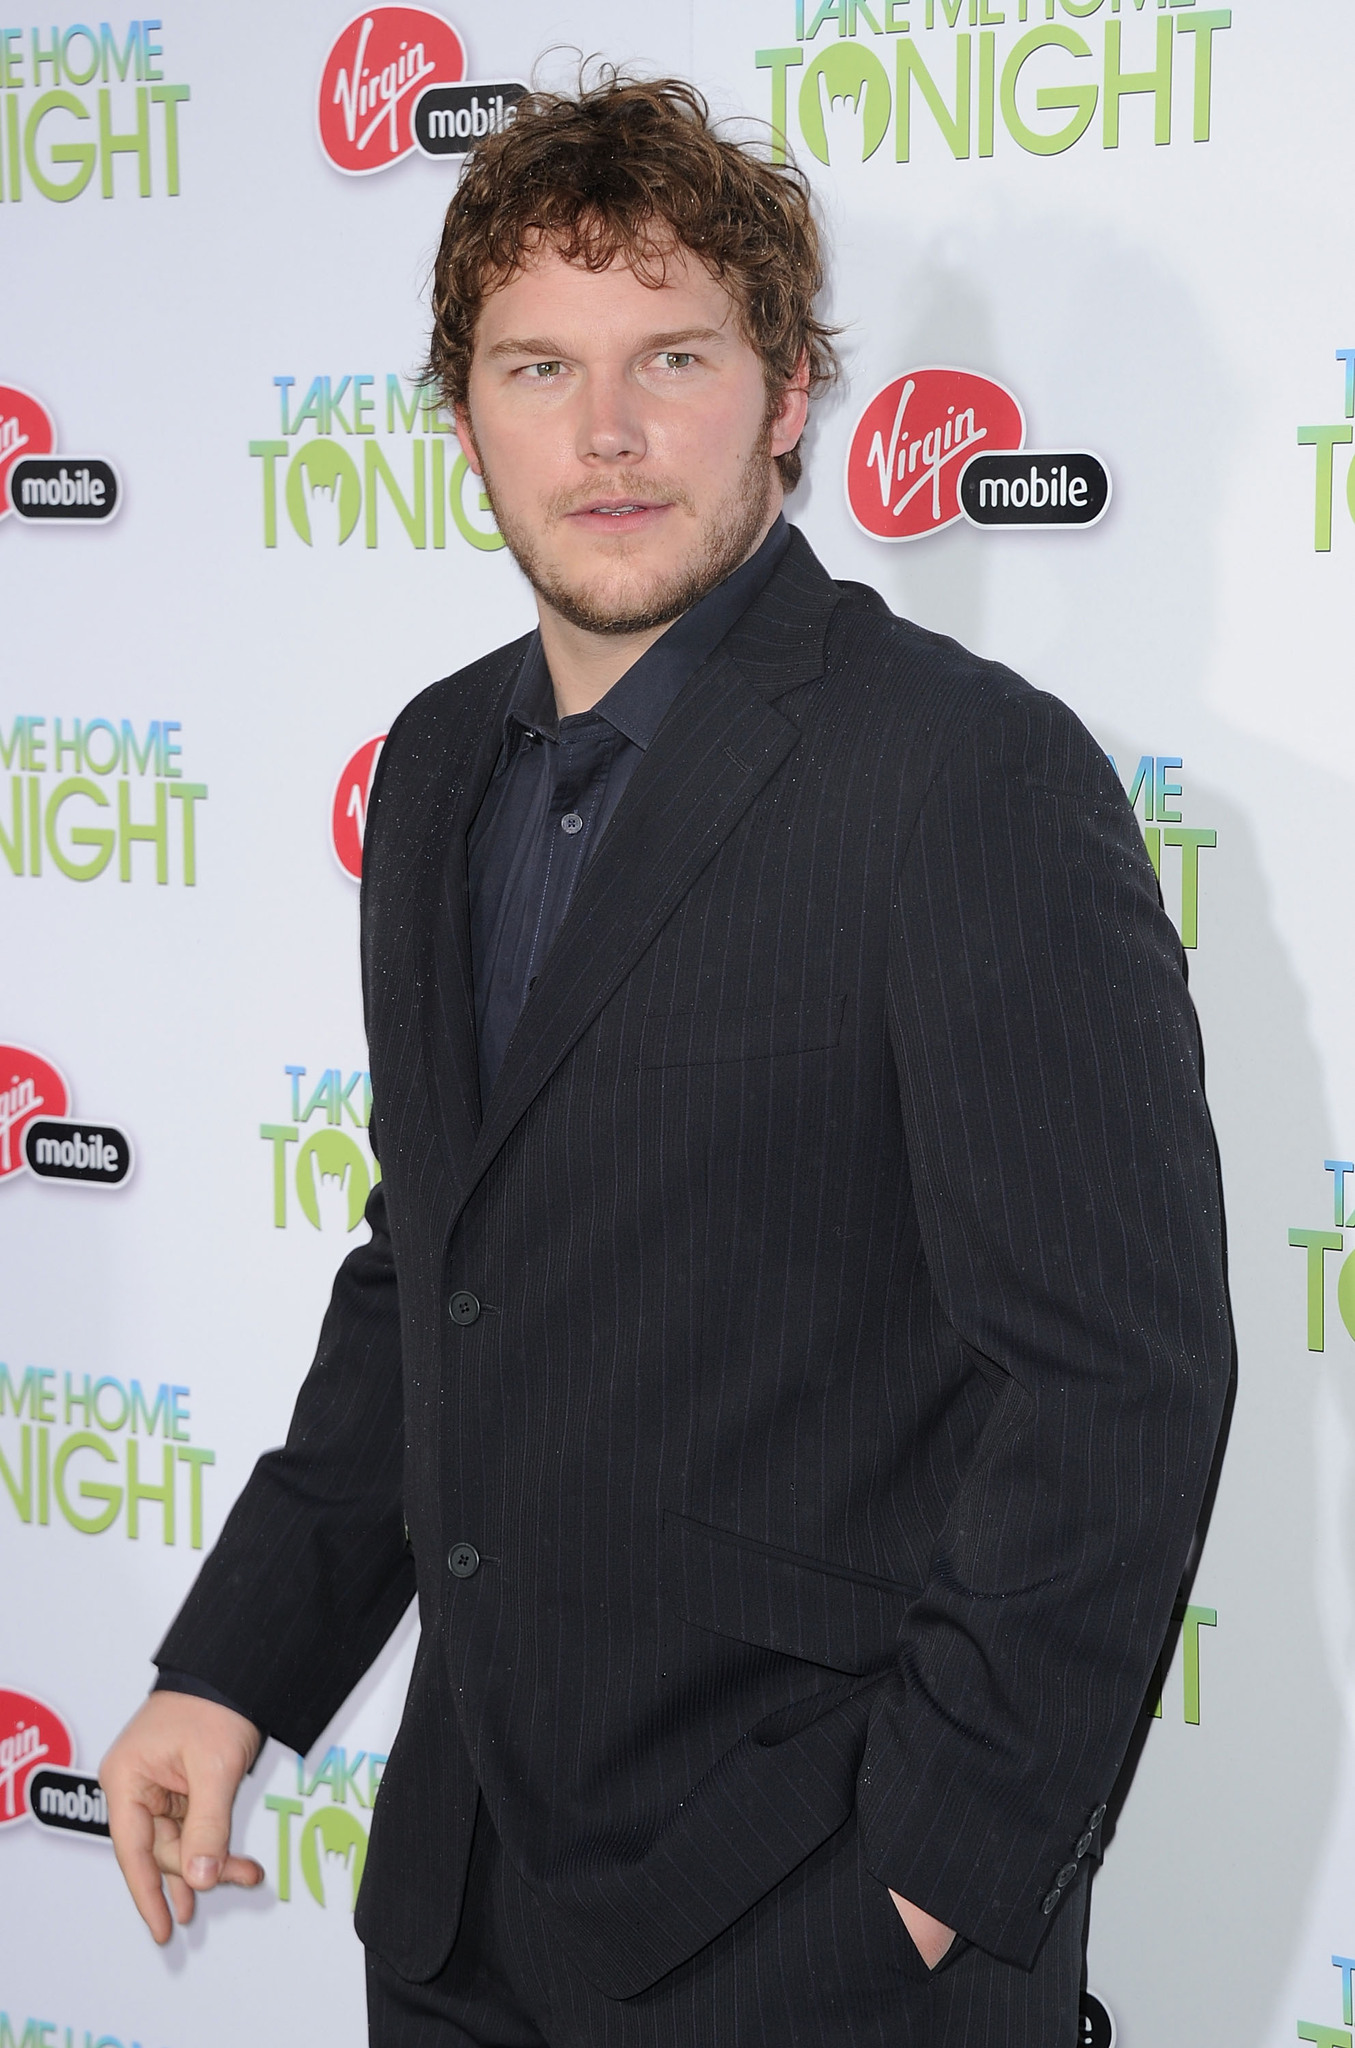 Chris Pratt at event of Take Me Home Tonight (2011) photo #489216